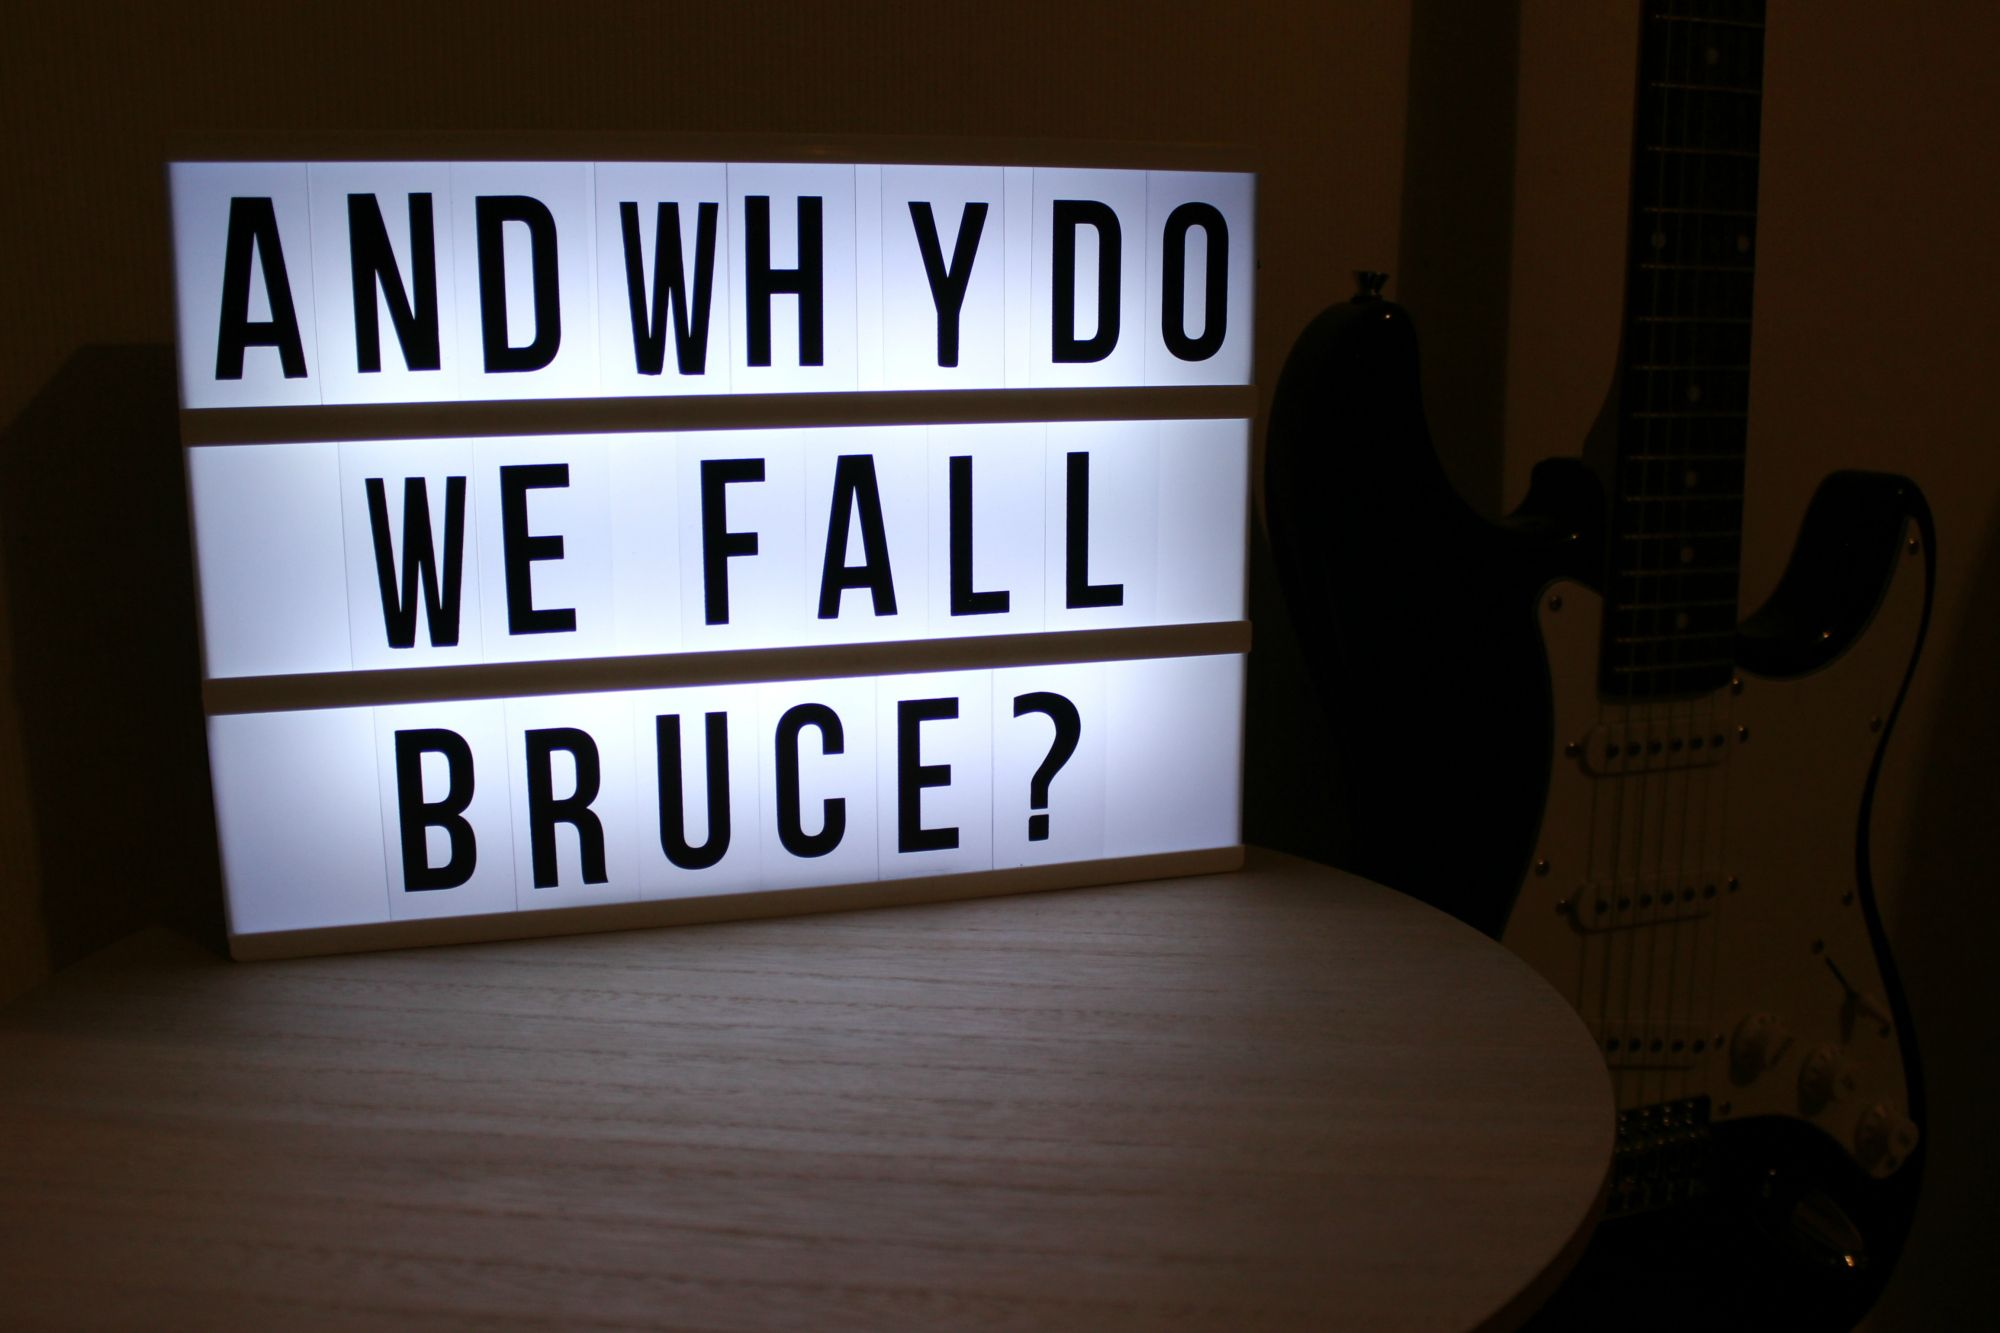 ... and why do we fall Bruce? Batman <3